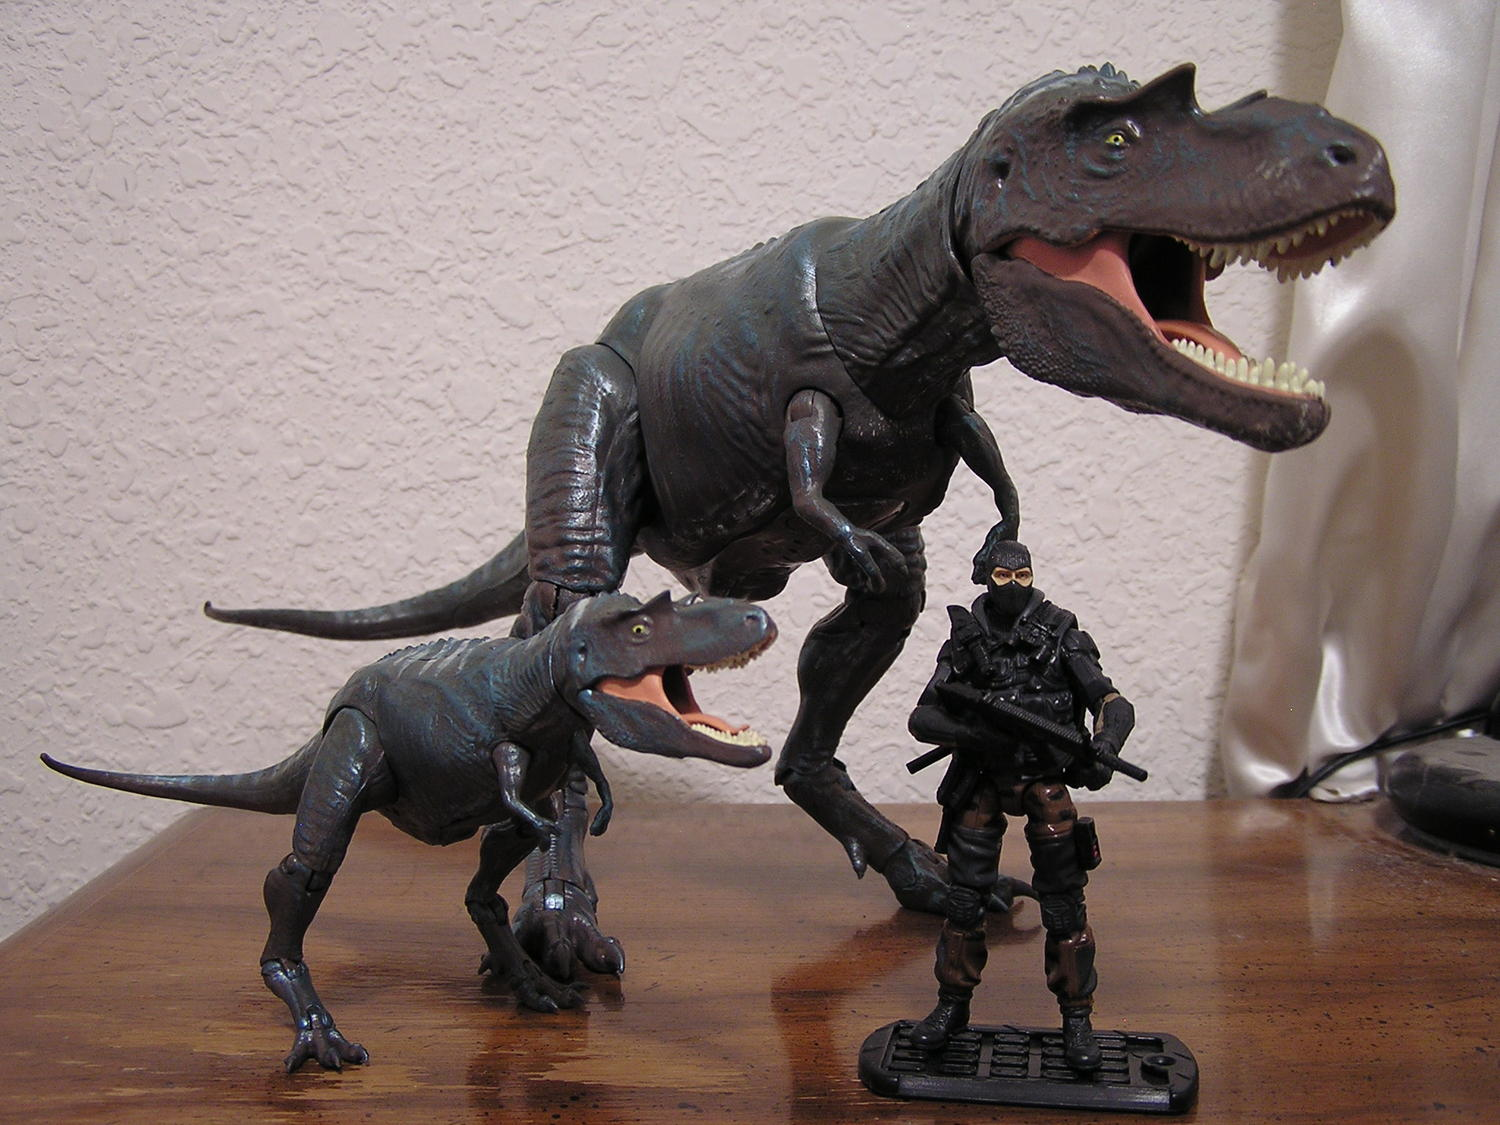 Walking With Dinosaurs Toys : Walking with dinosaurs d movie toys toy discussion